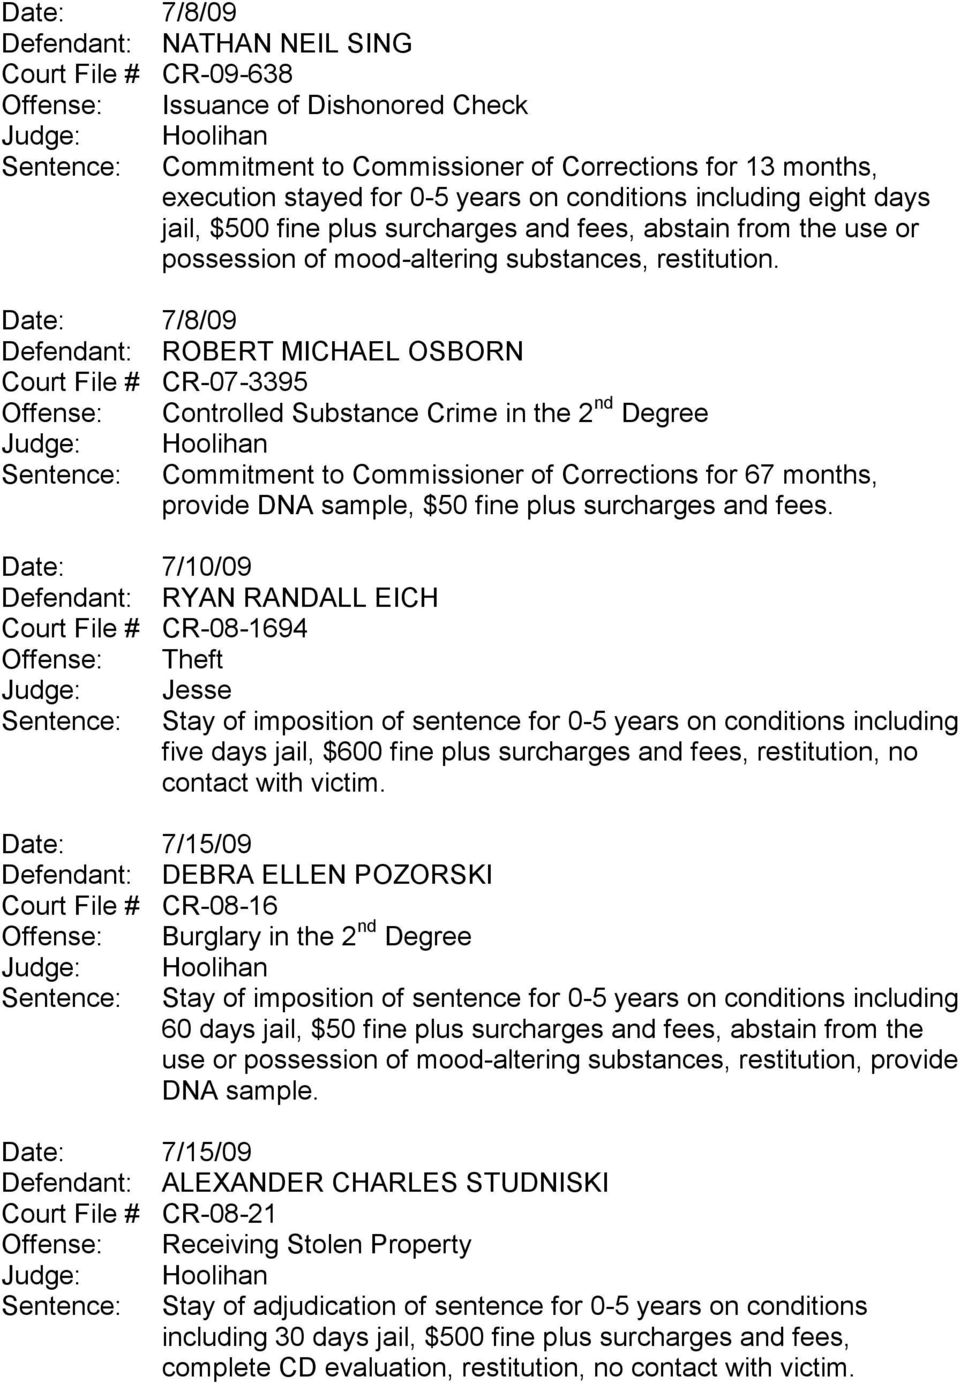 Date: 7/8/09 Defendant: ROBERT MICHAEL OSBORN Court File # CR-07-3395 Offense: Controlled Substance Crime in the 2 nd Degree Sentence: Commitment to Commissioner of Corrections for 67 months, Date: